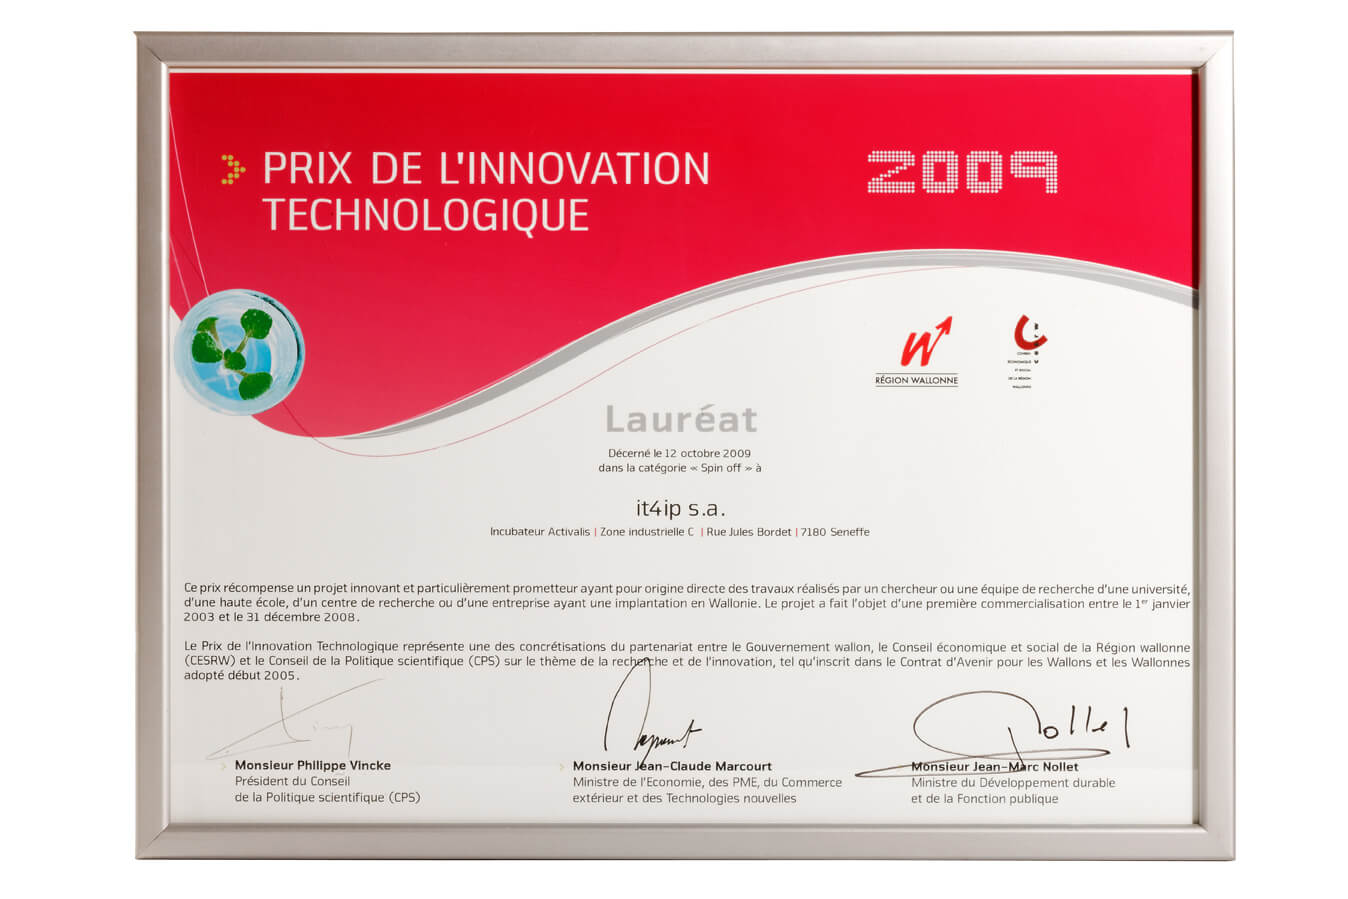 Award for technological innovation